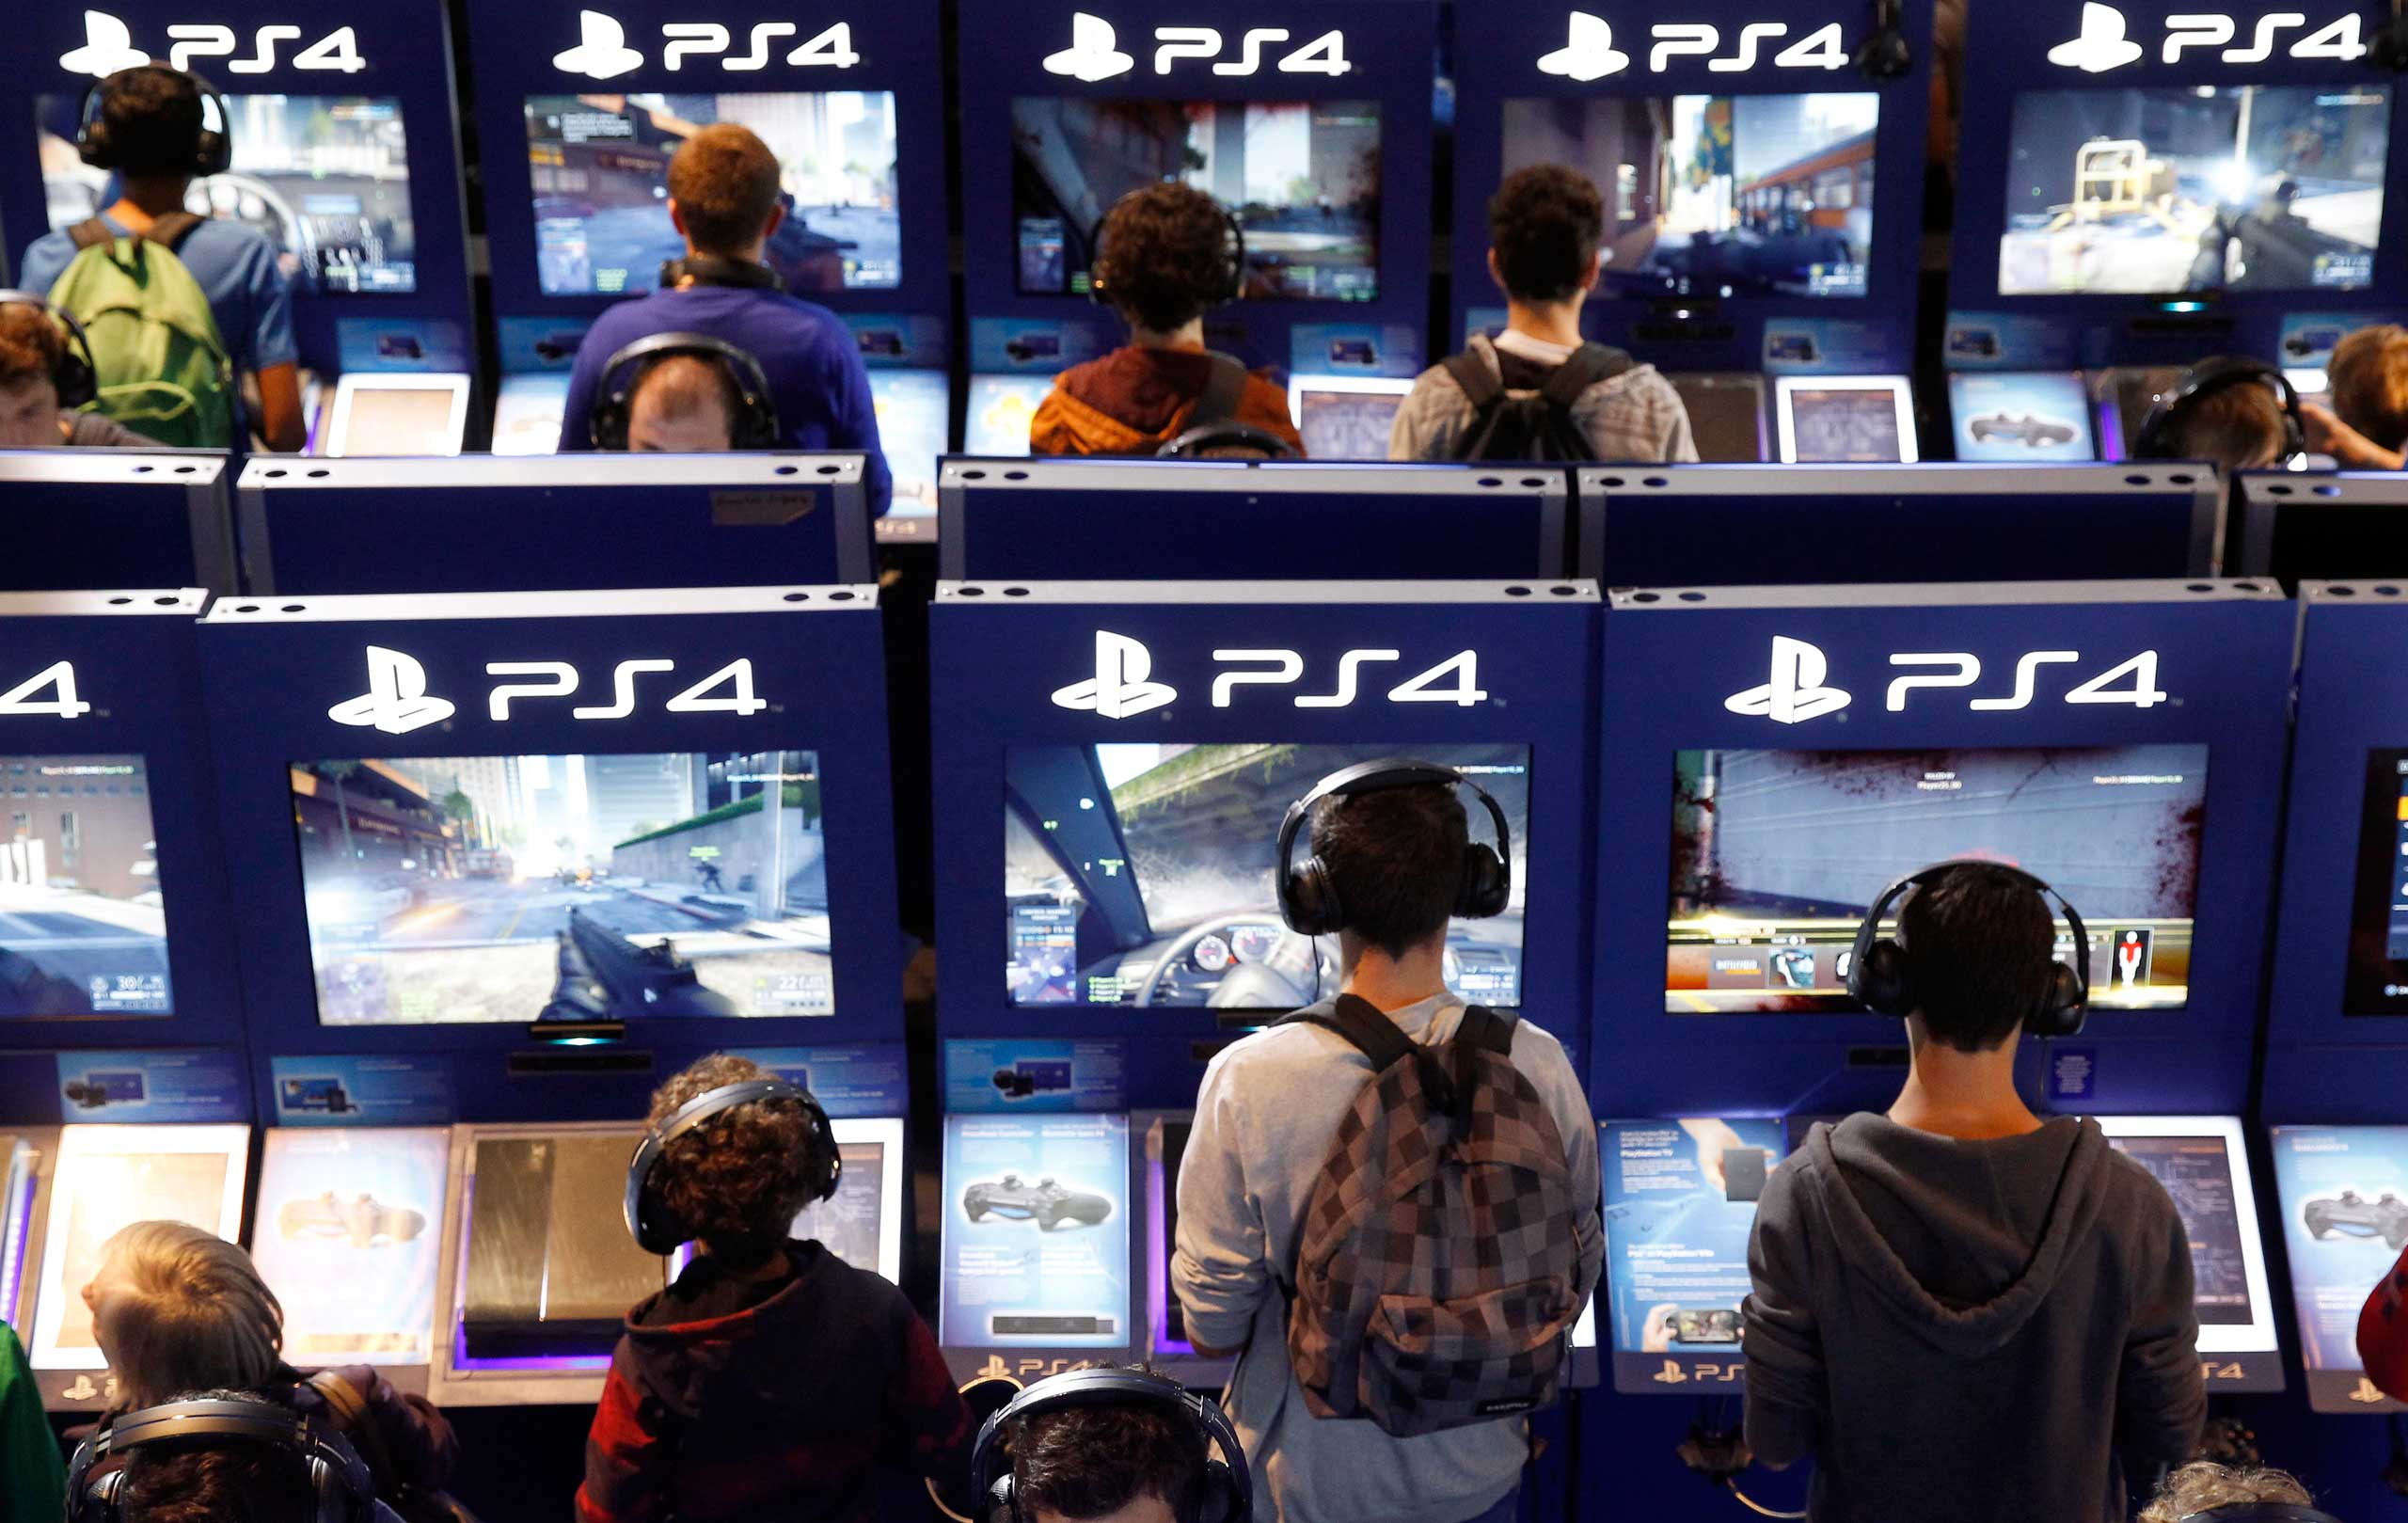 Gamers play video games with the PS4 consoles of PlayStation during the International Games Week on Oct. 29, 2014, in Paris